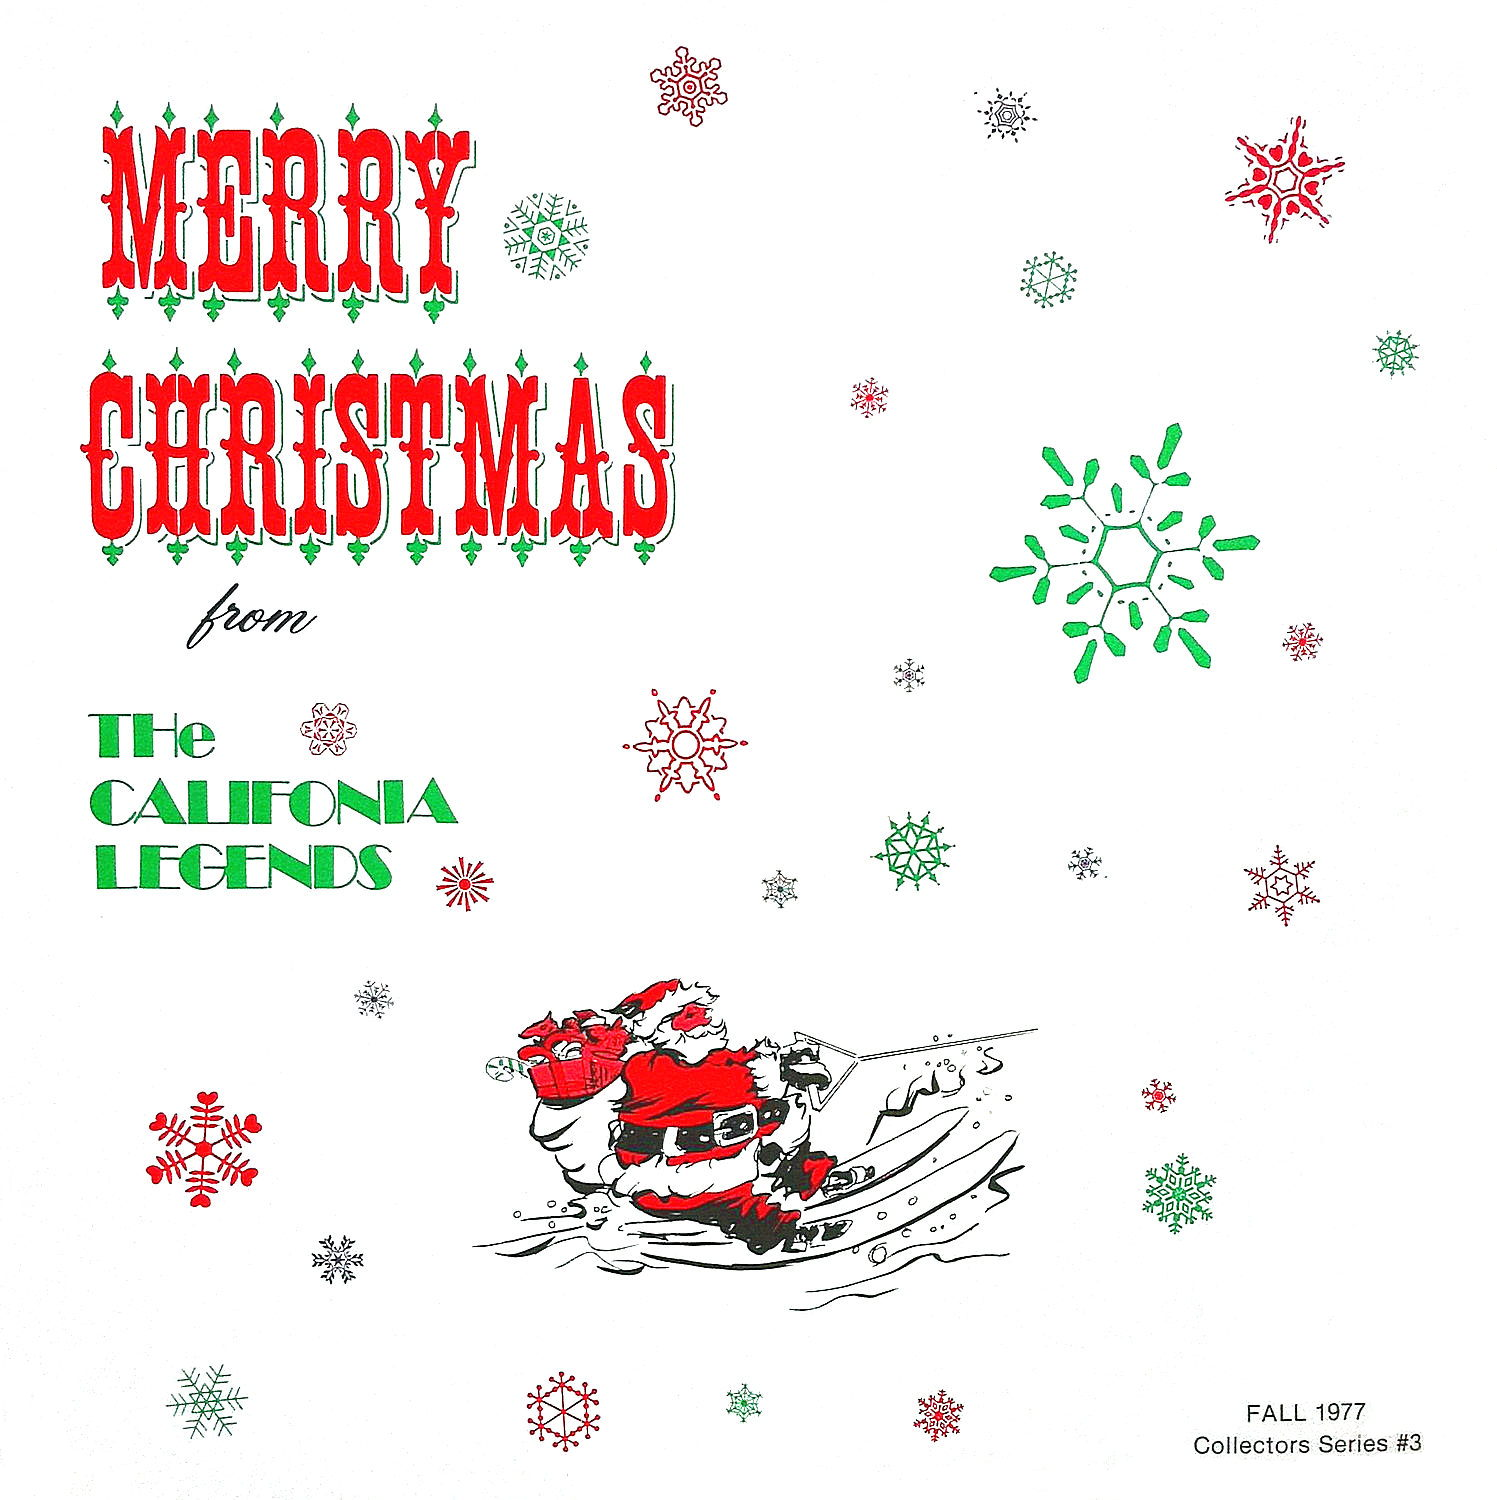 Merry Christmas From The California Legends cover